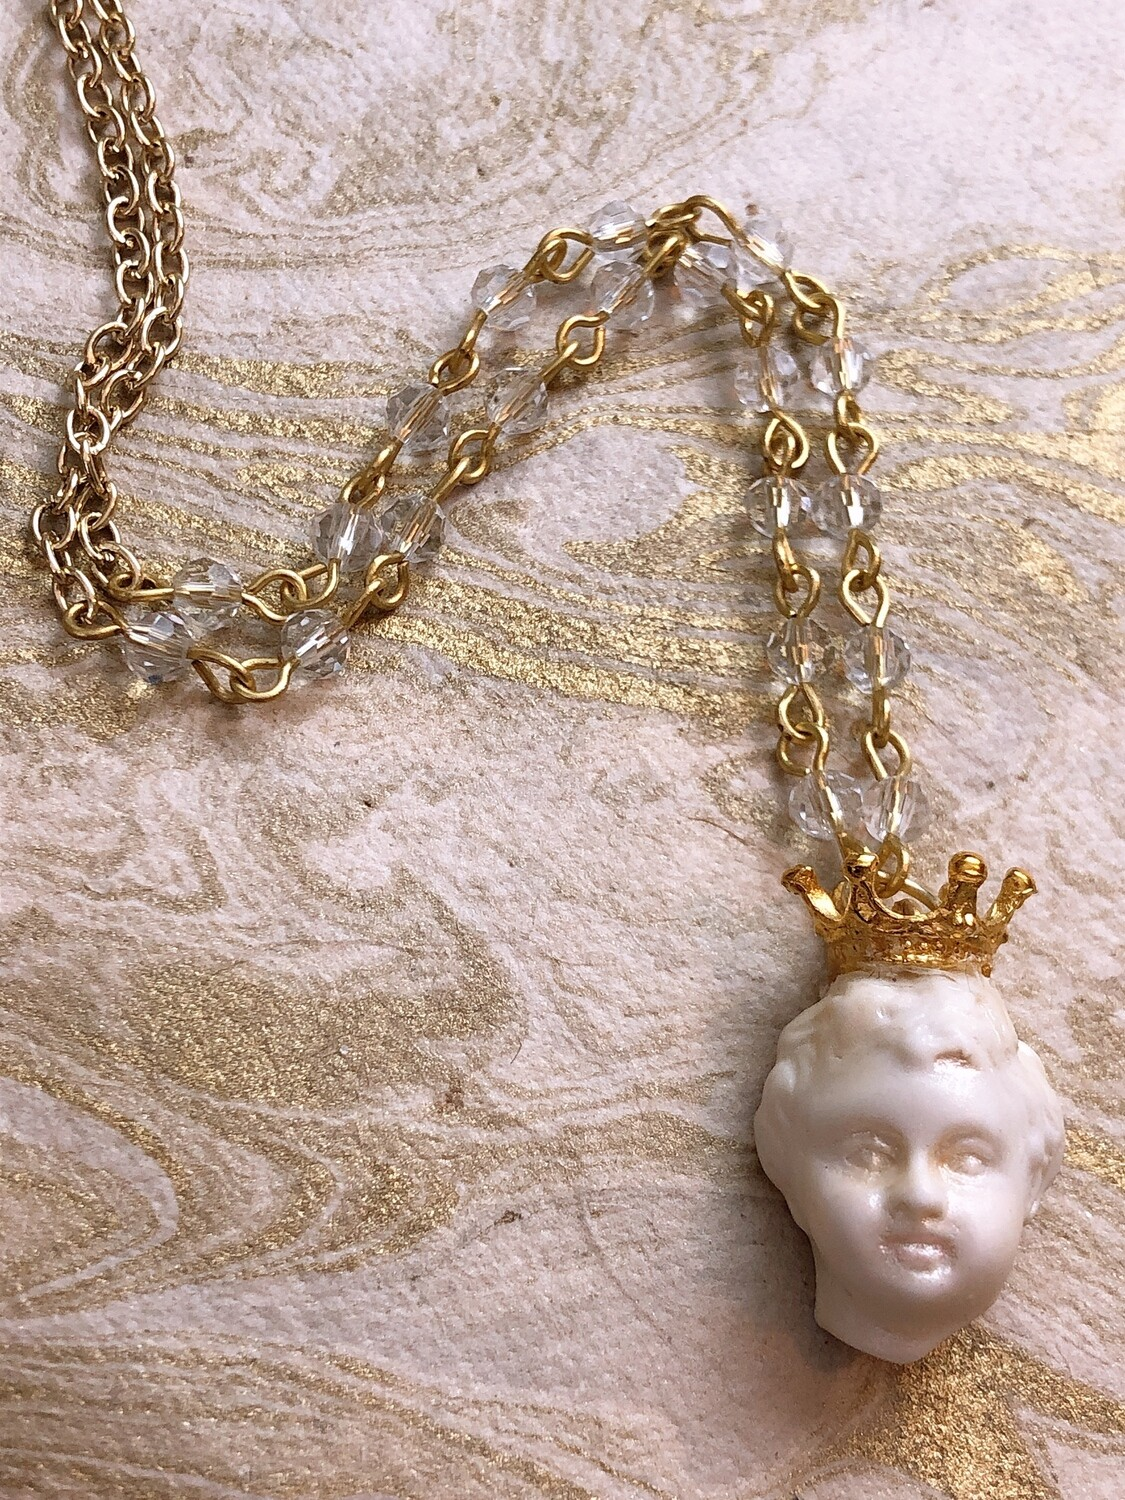 doll parts necklace (crown prince)